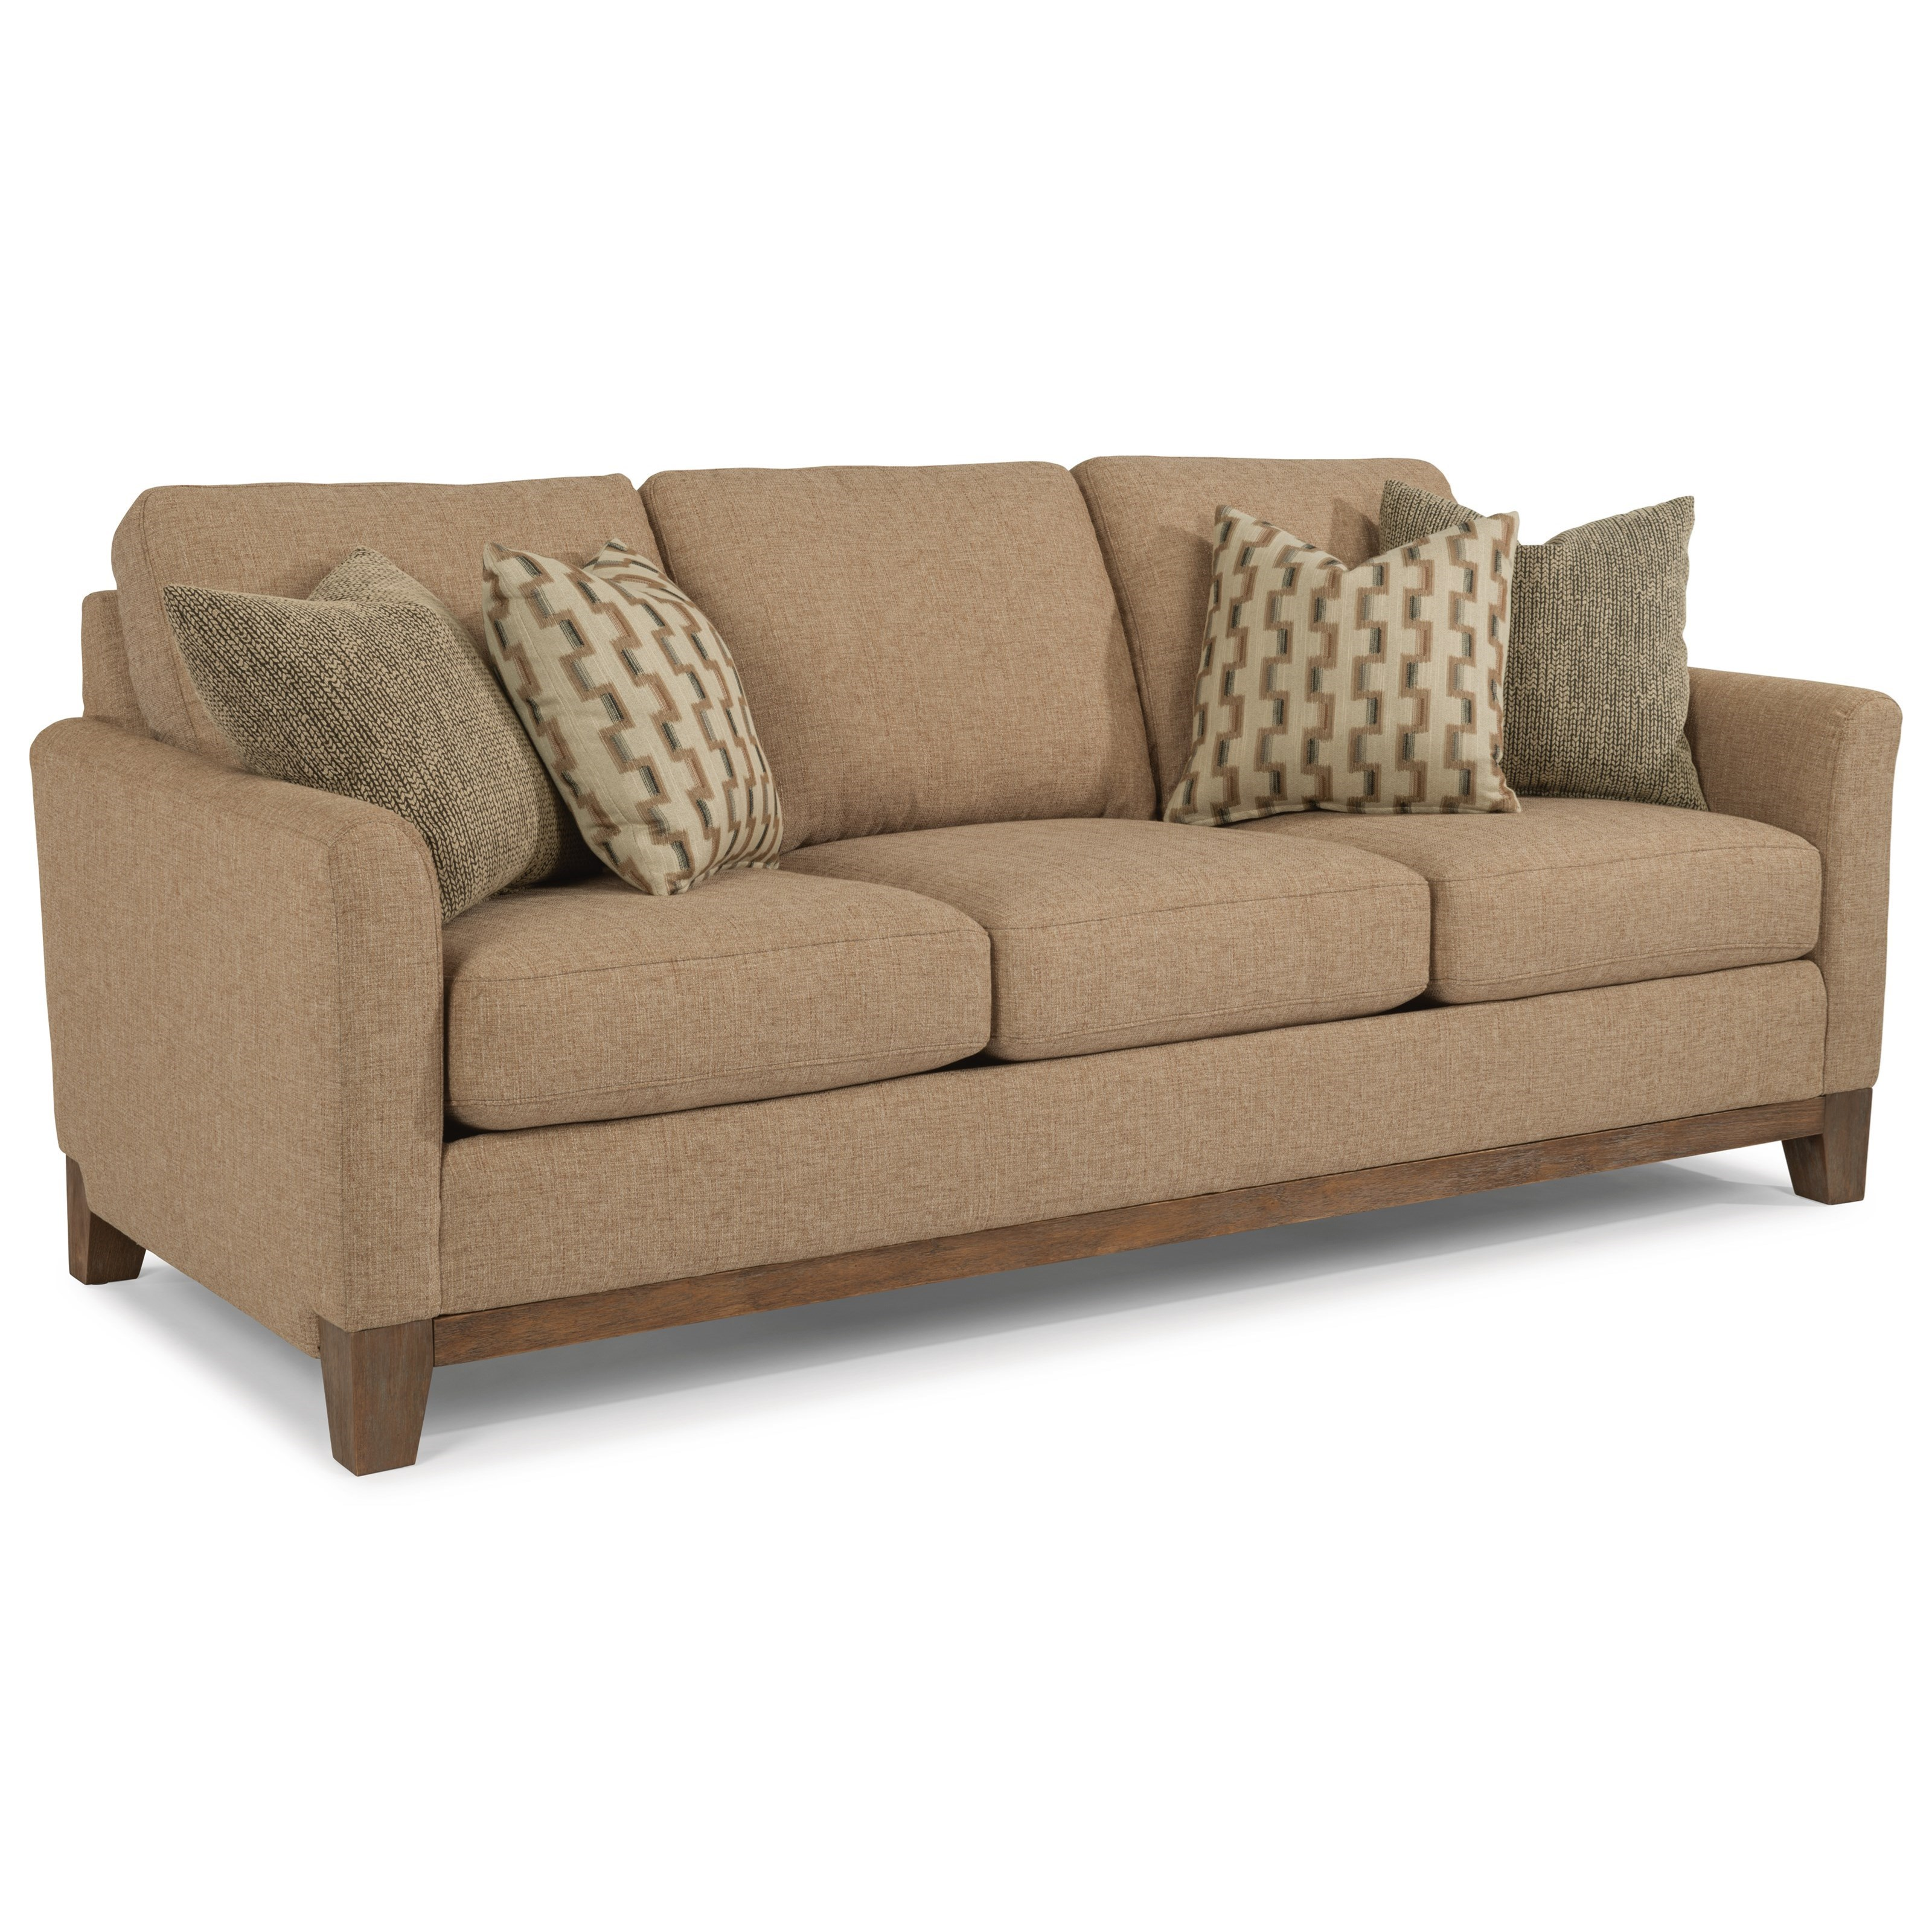 Sofa Arm Covers Dublin Hampton Transitional Sofa With Exposed Wood Base Rail By Flexsteel At Rooms For Less